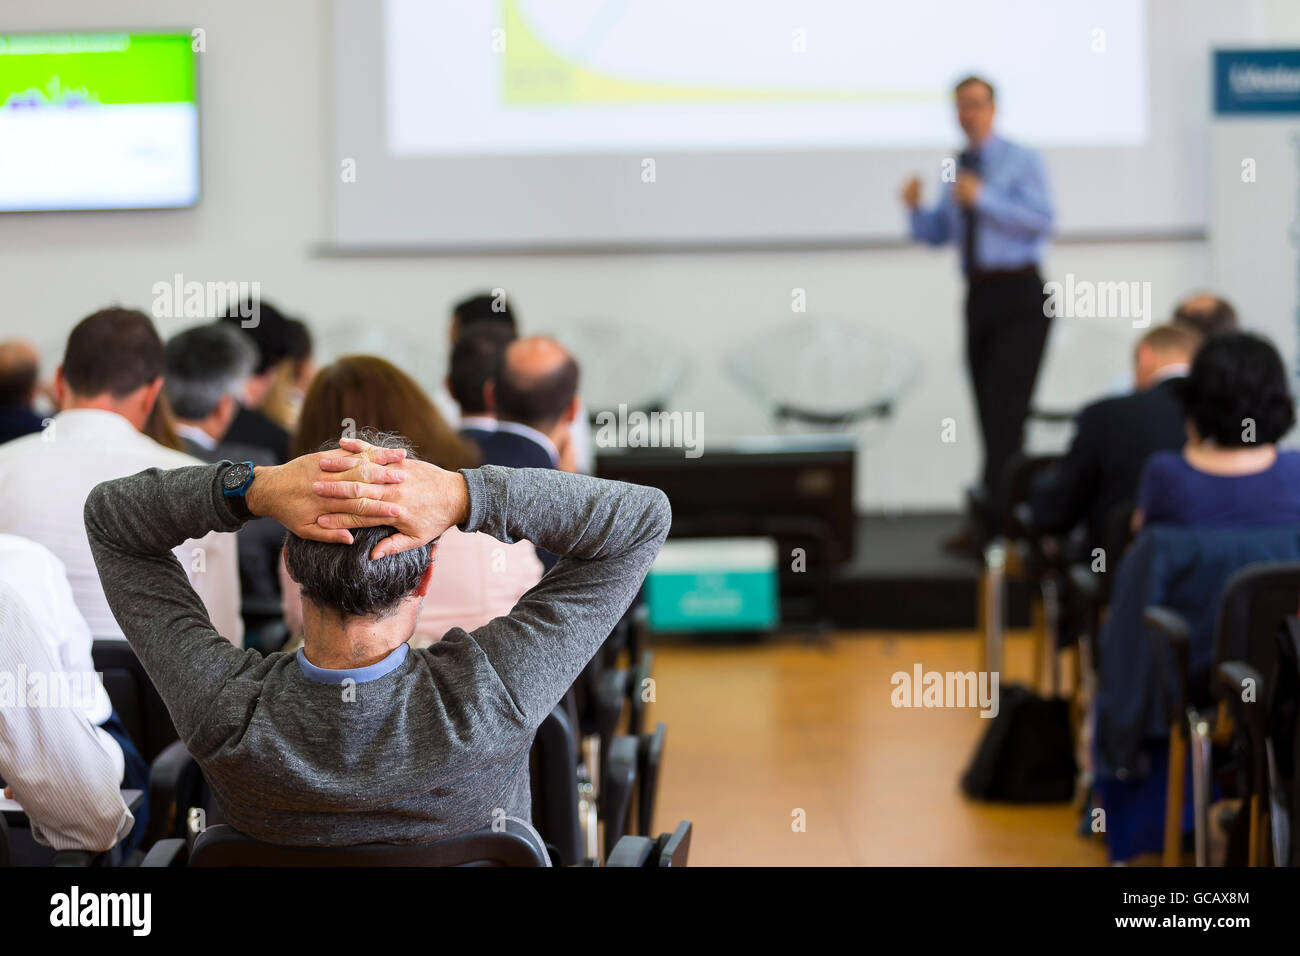 Business man during a conference presentation - Stock Image